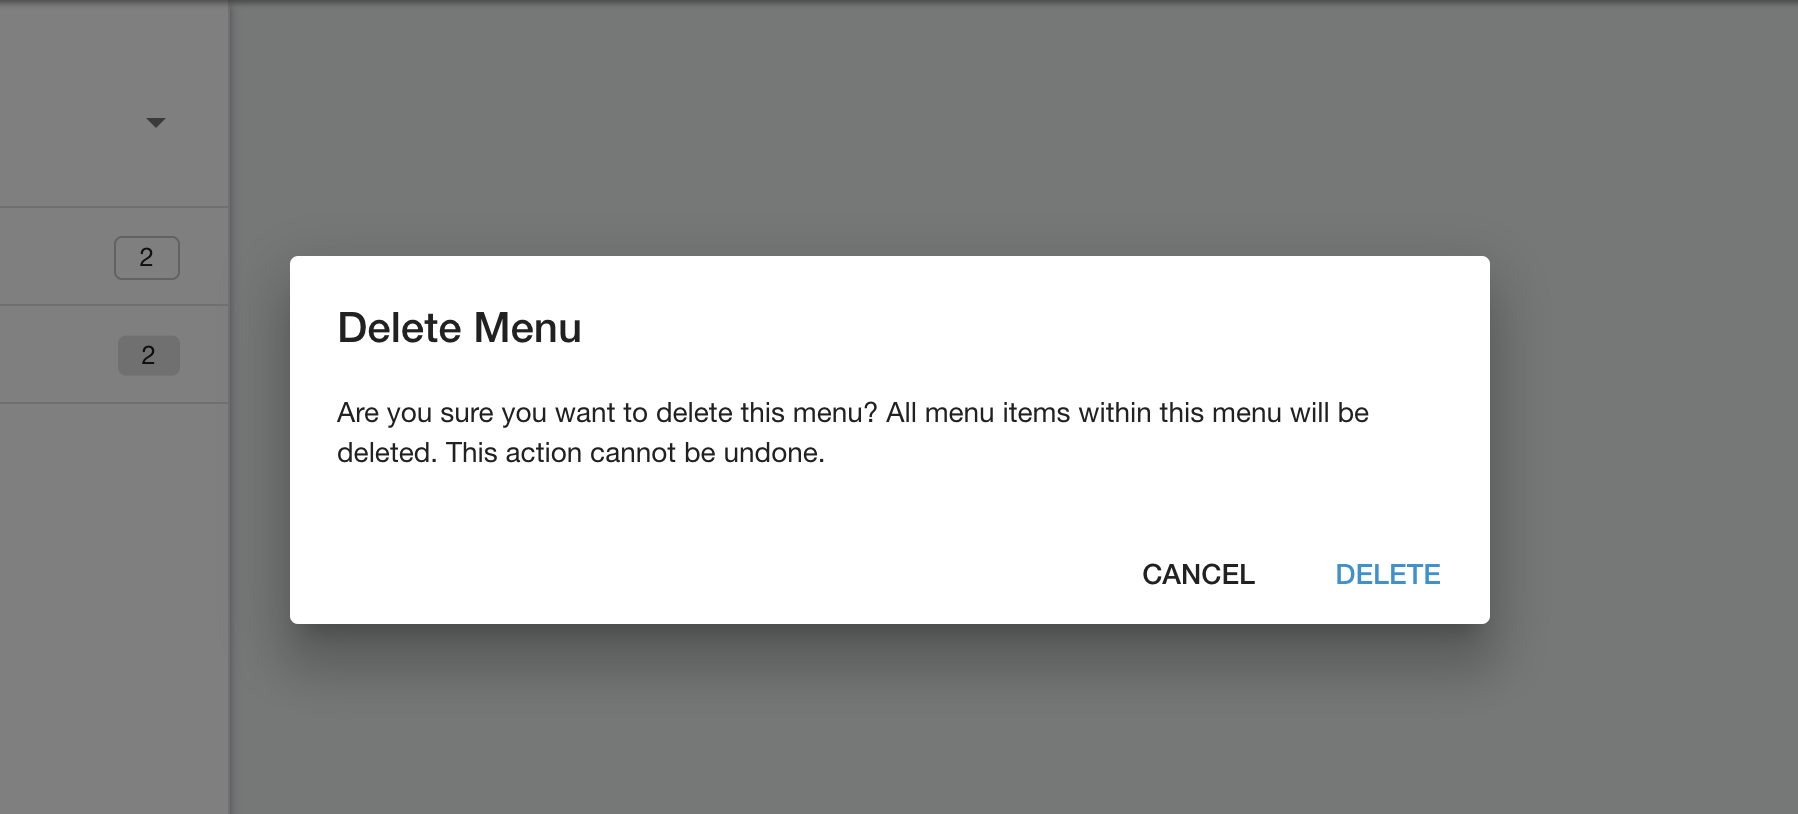 Menu_-_Delete_confirmation.png